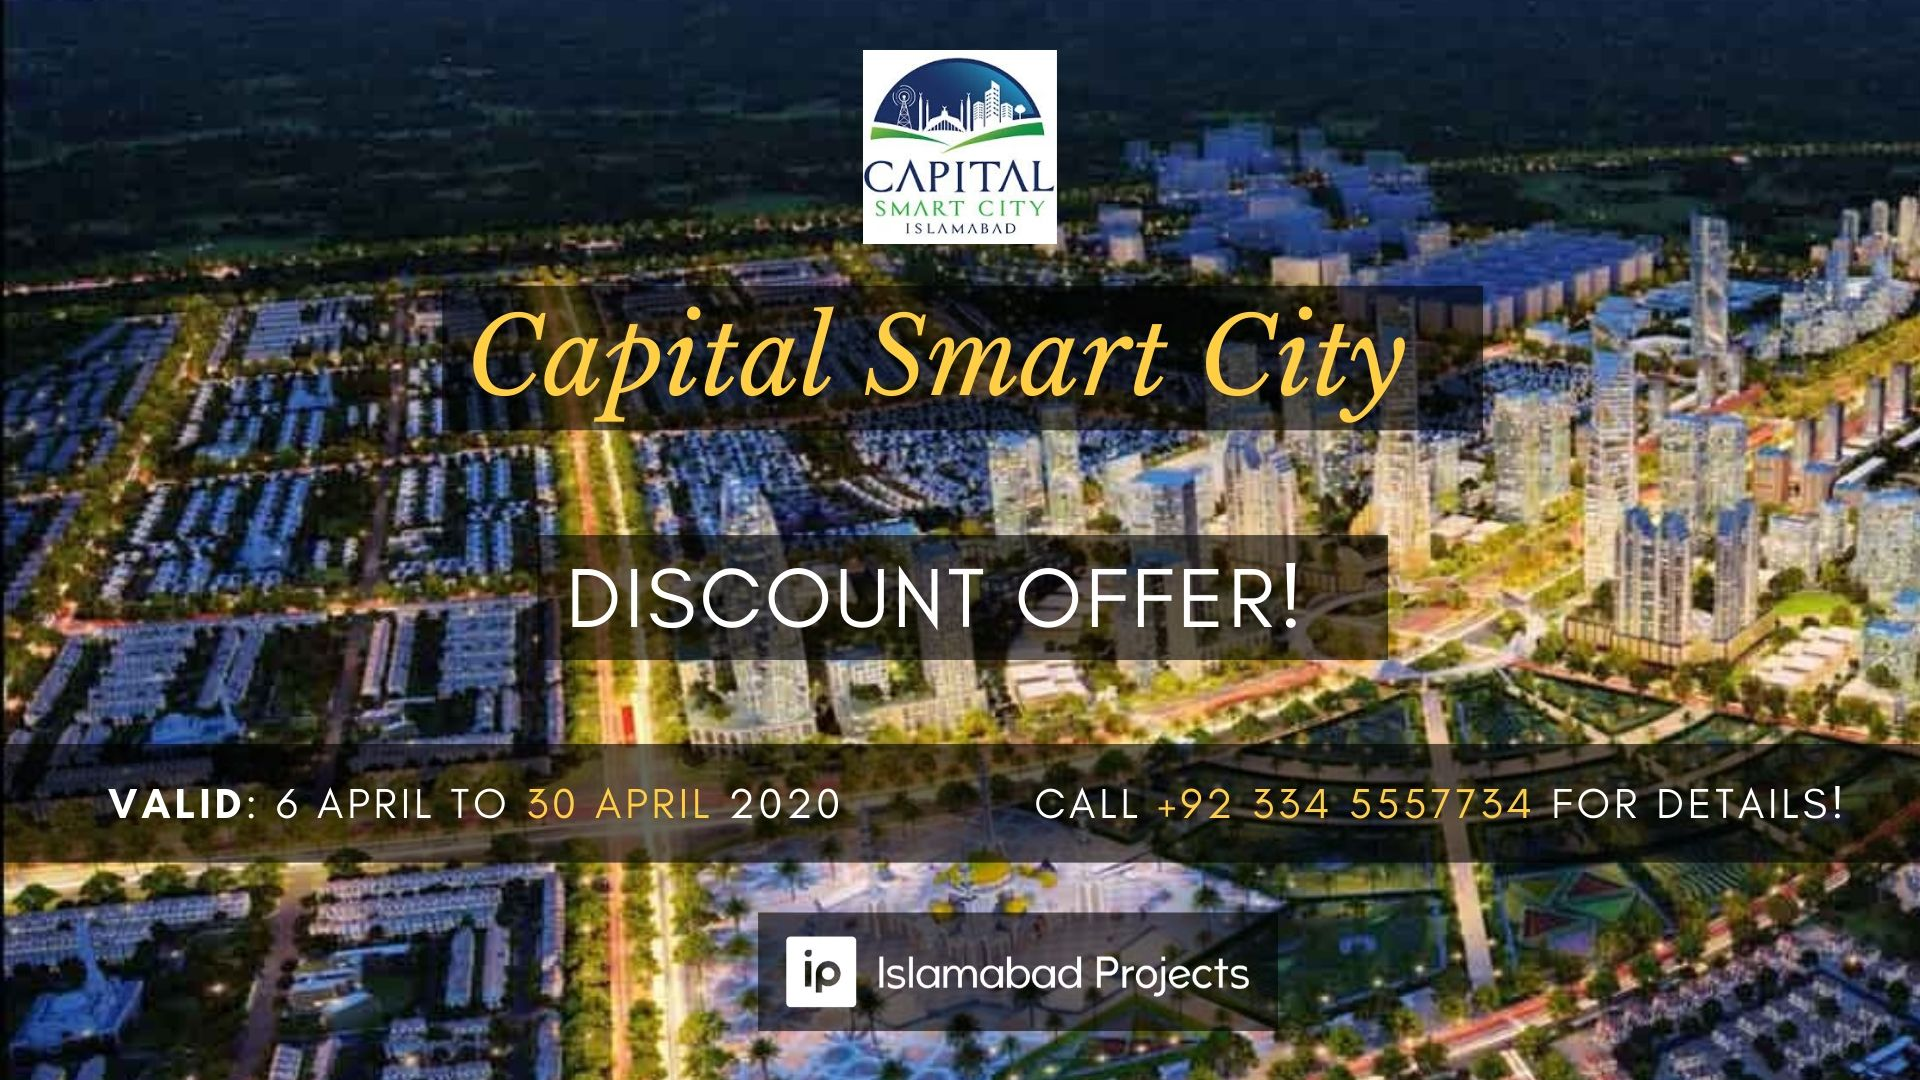 Capital Smart City Brings Massive Discount Offer Amidst the Coronavirus